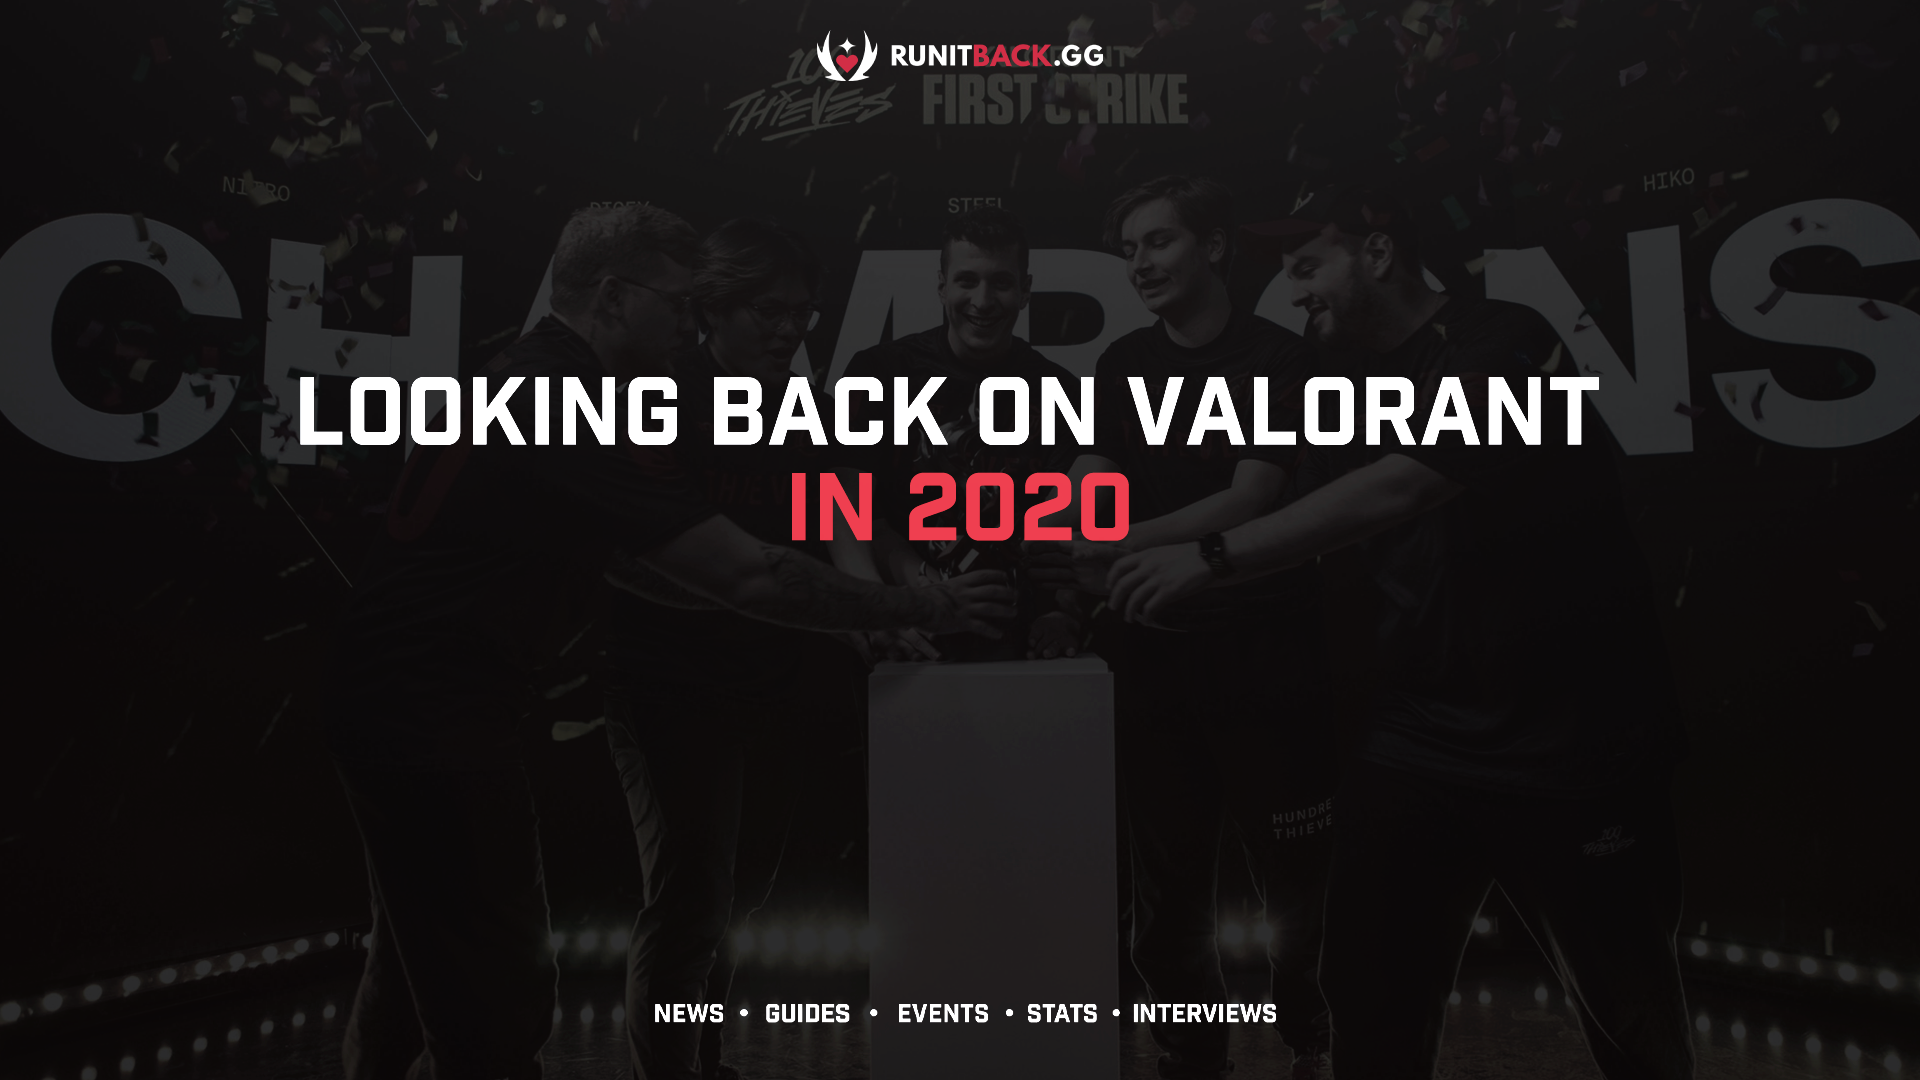 Valorant in 2020: Paving the Way Forward